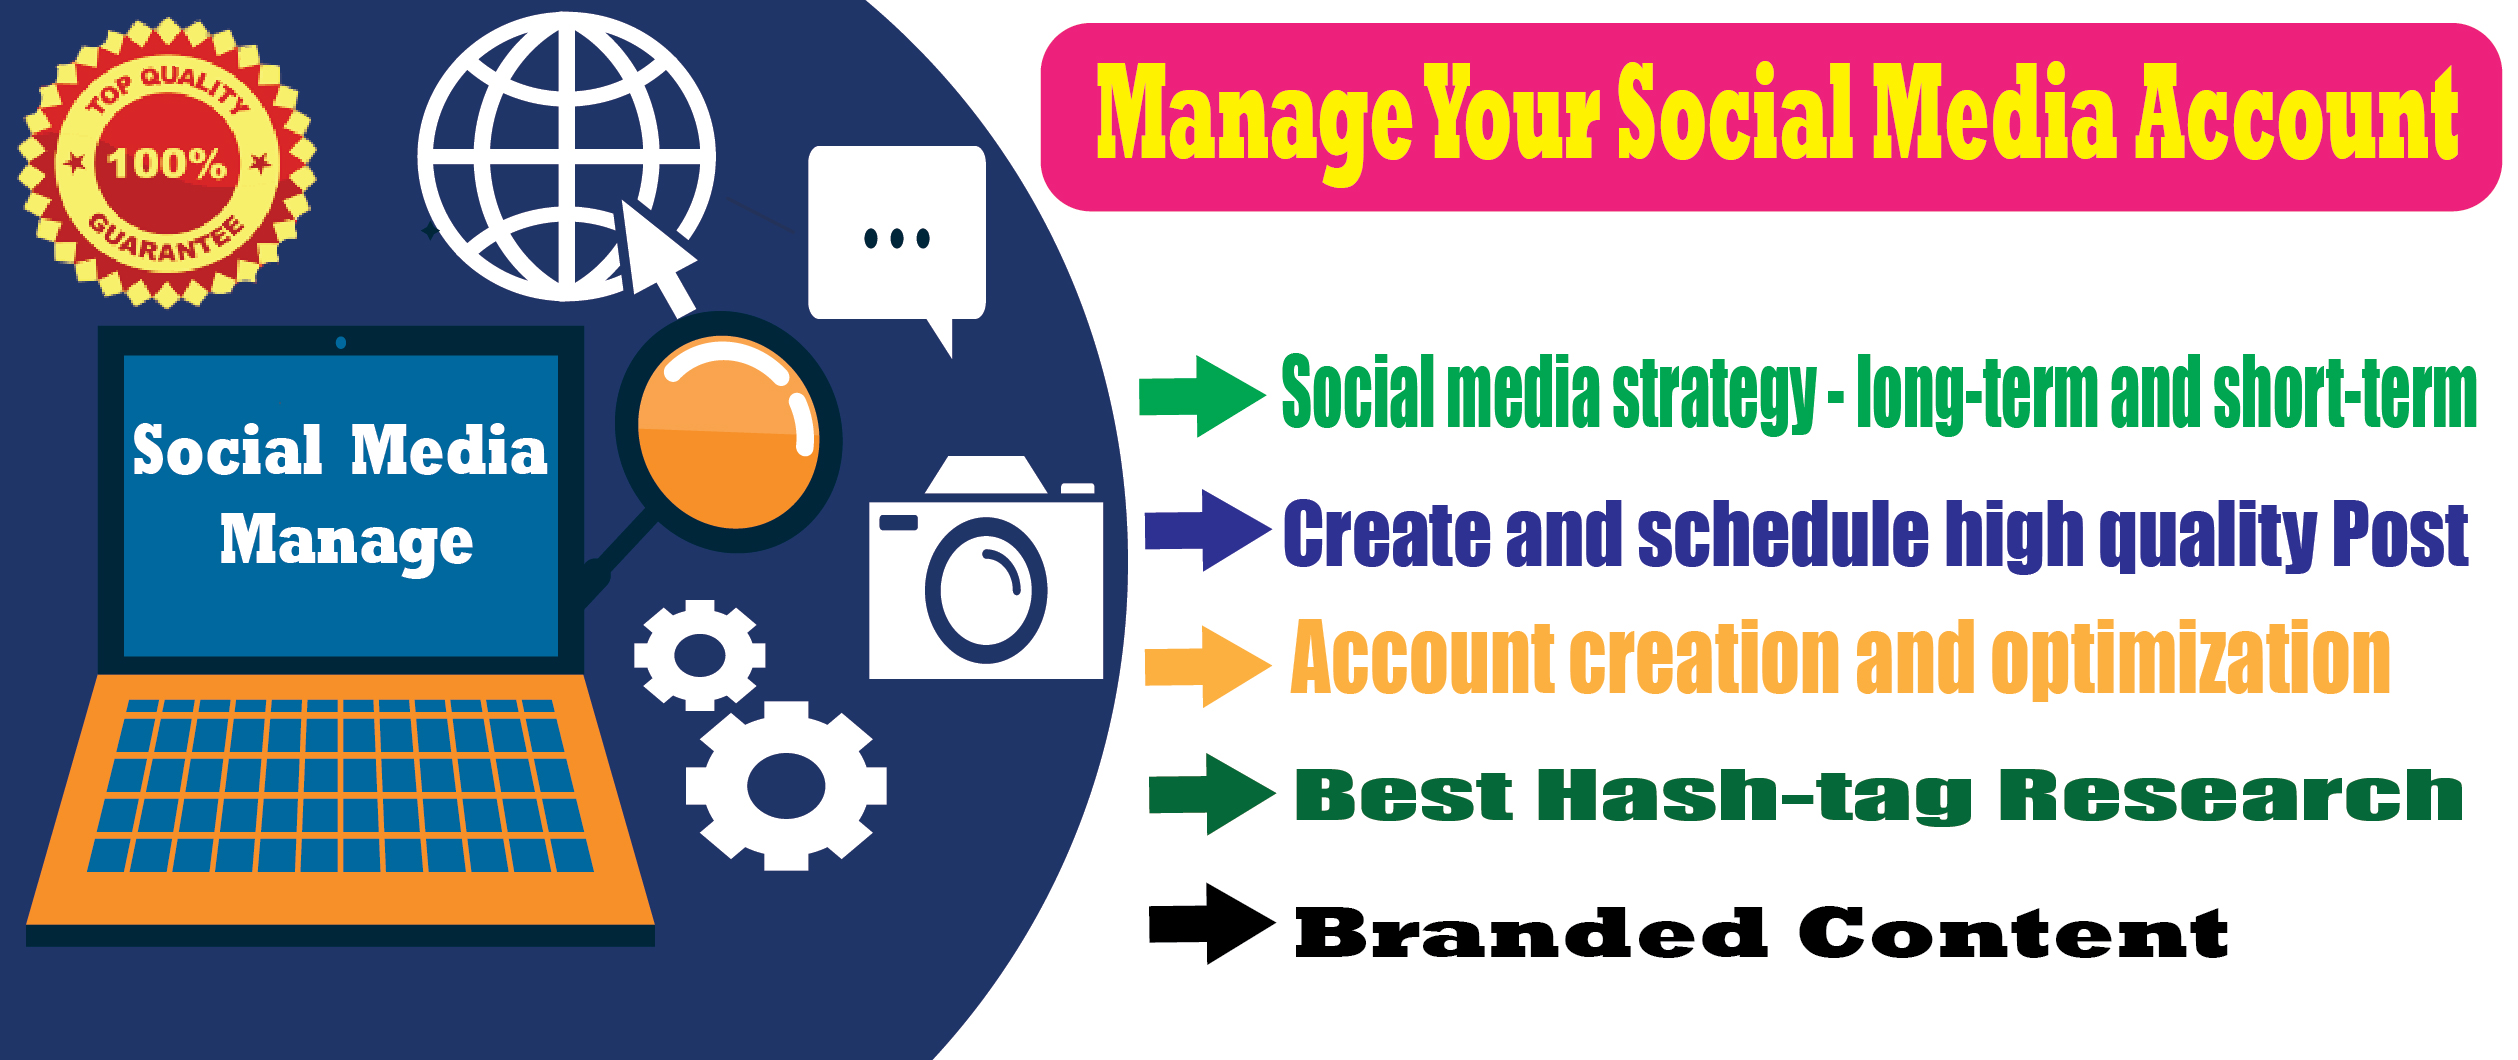 I will manage your social media account 7days